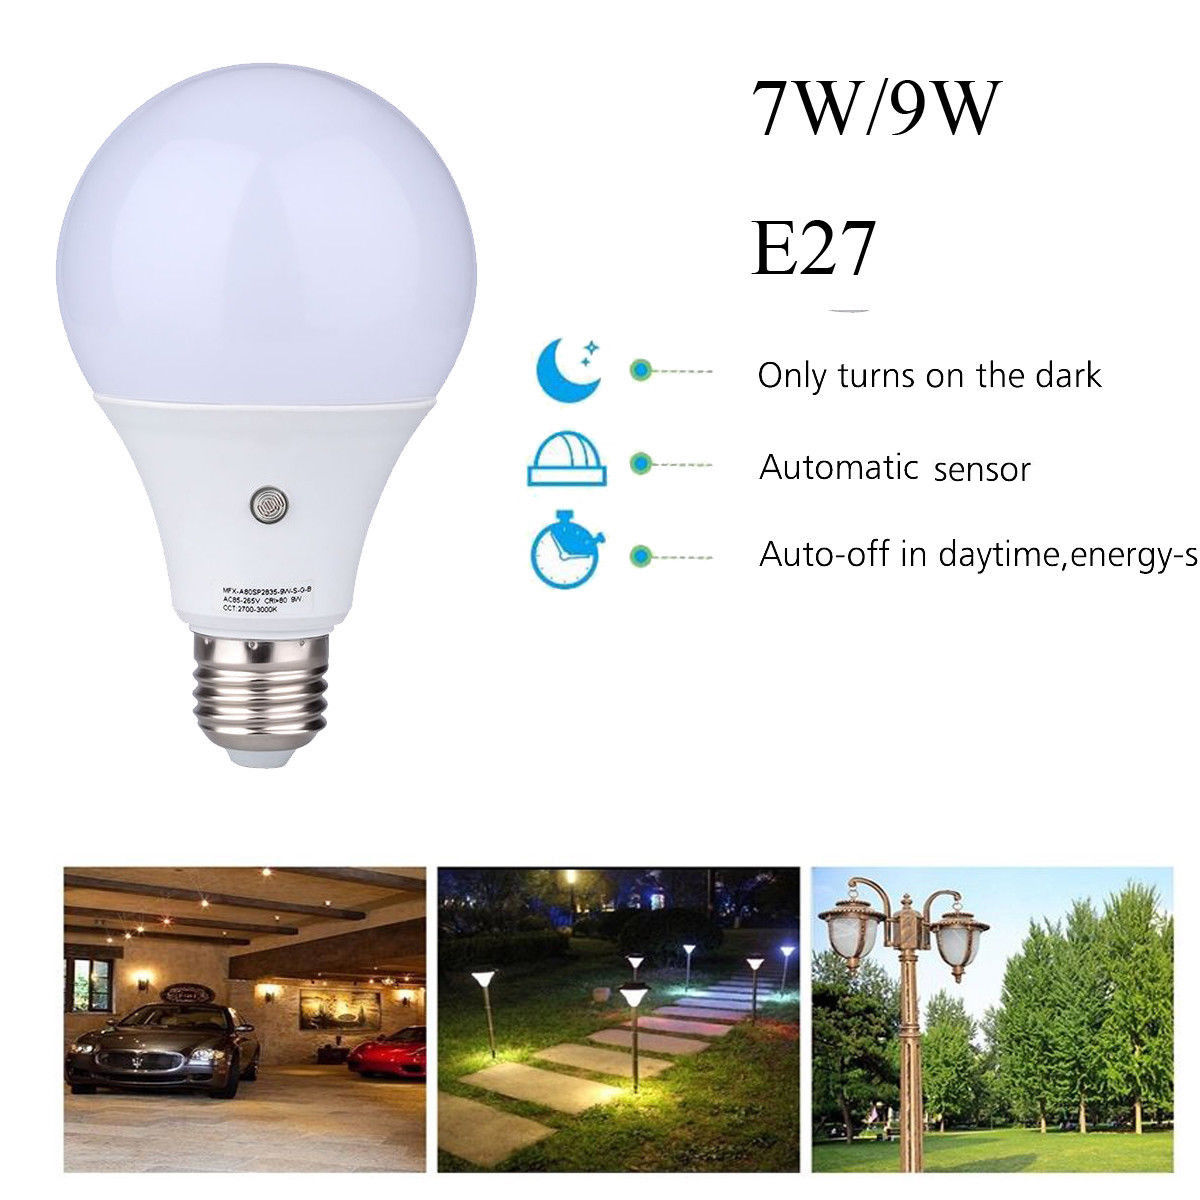 E27 LED Dusk to Dawn Sensor Light Bulbs Built-in Photosensor Detection Auto Switch Light Indoor/Outdoor Lighting Lamp for Porch Hallway Patio Garage